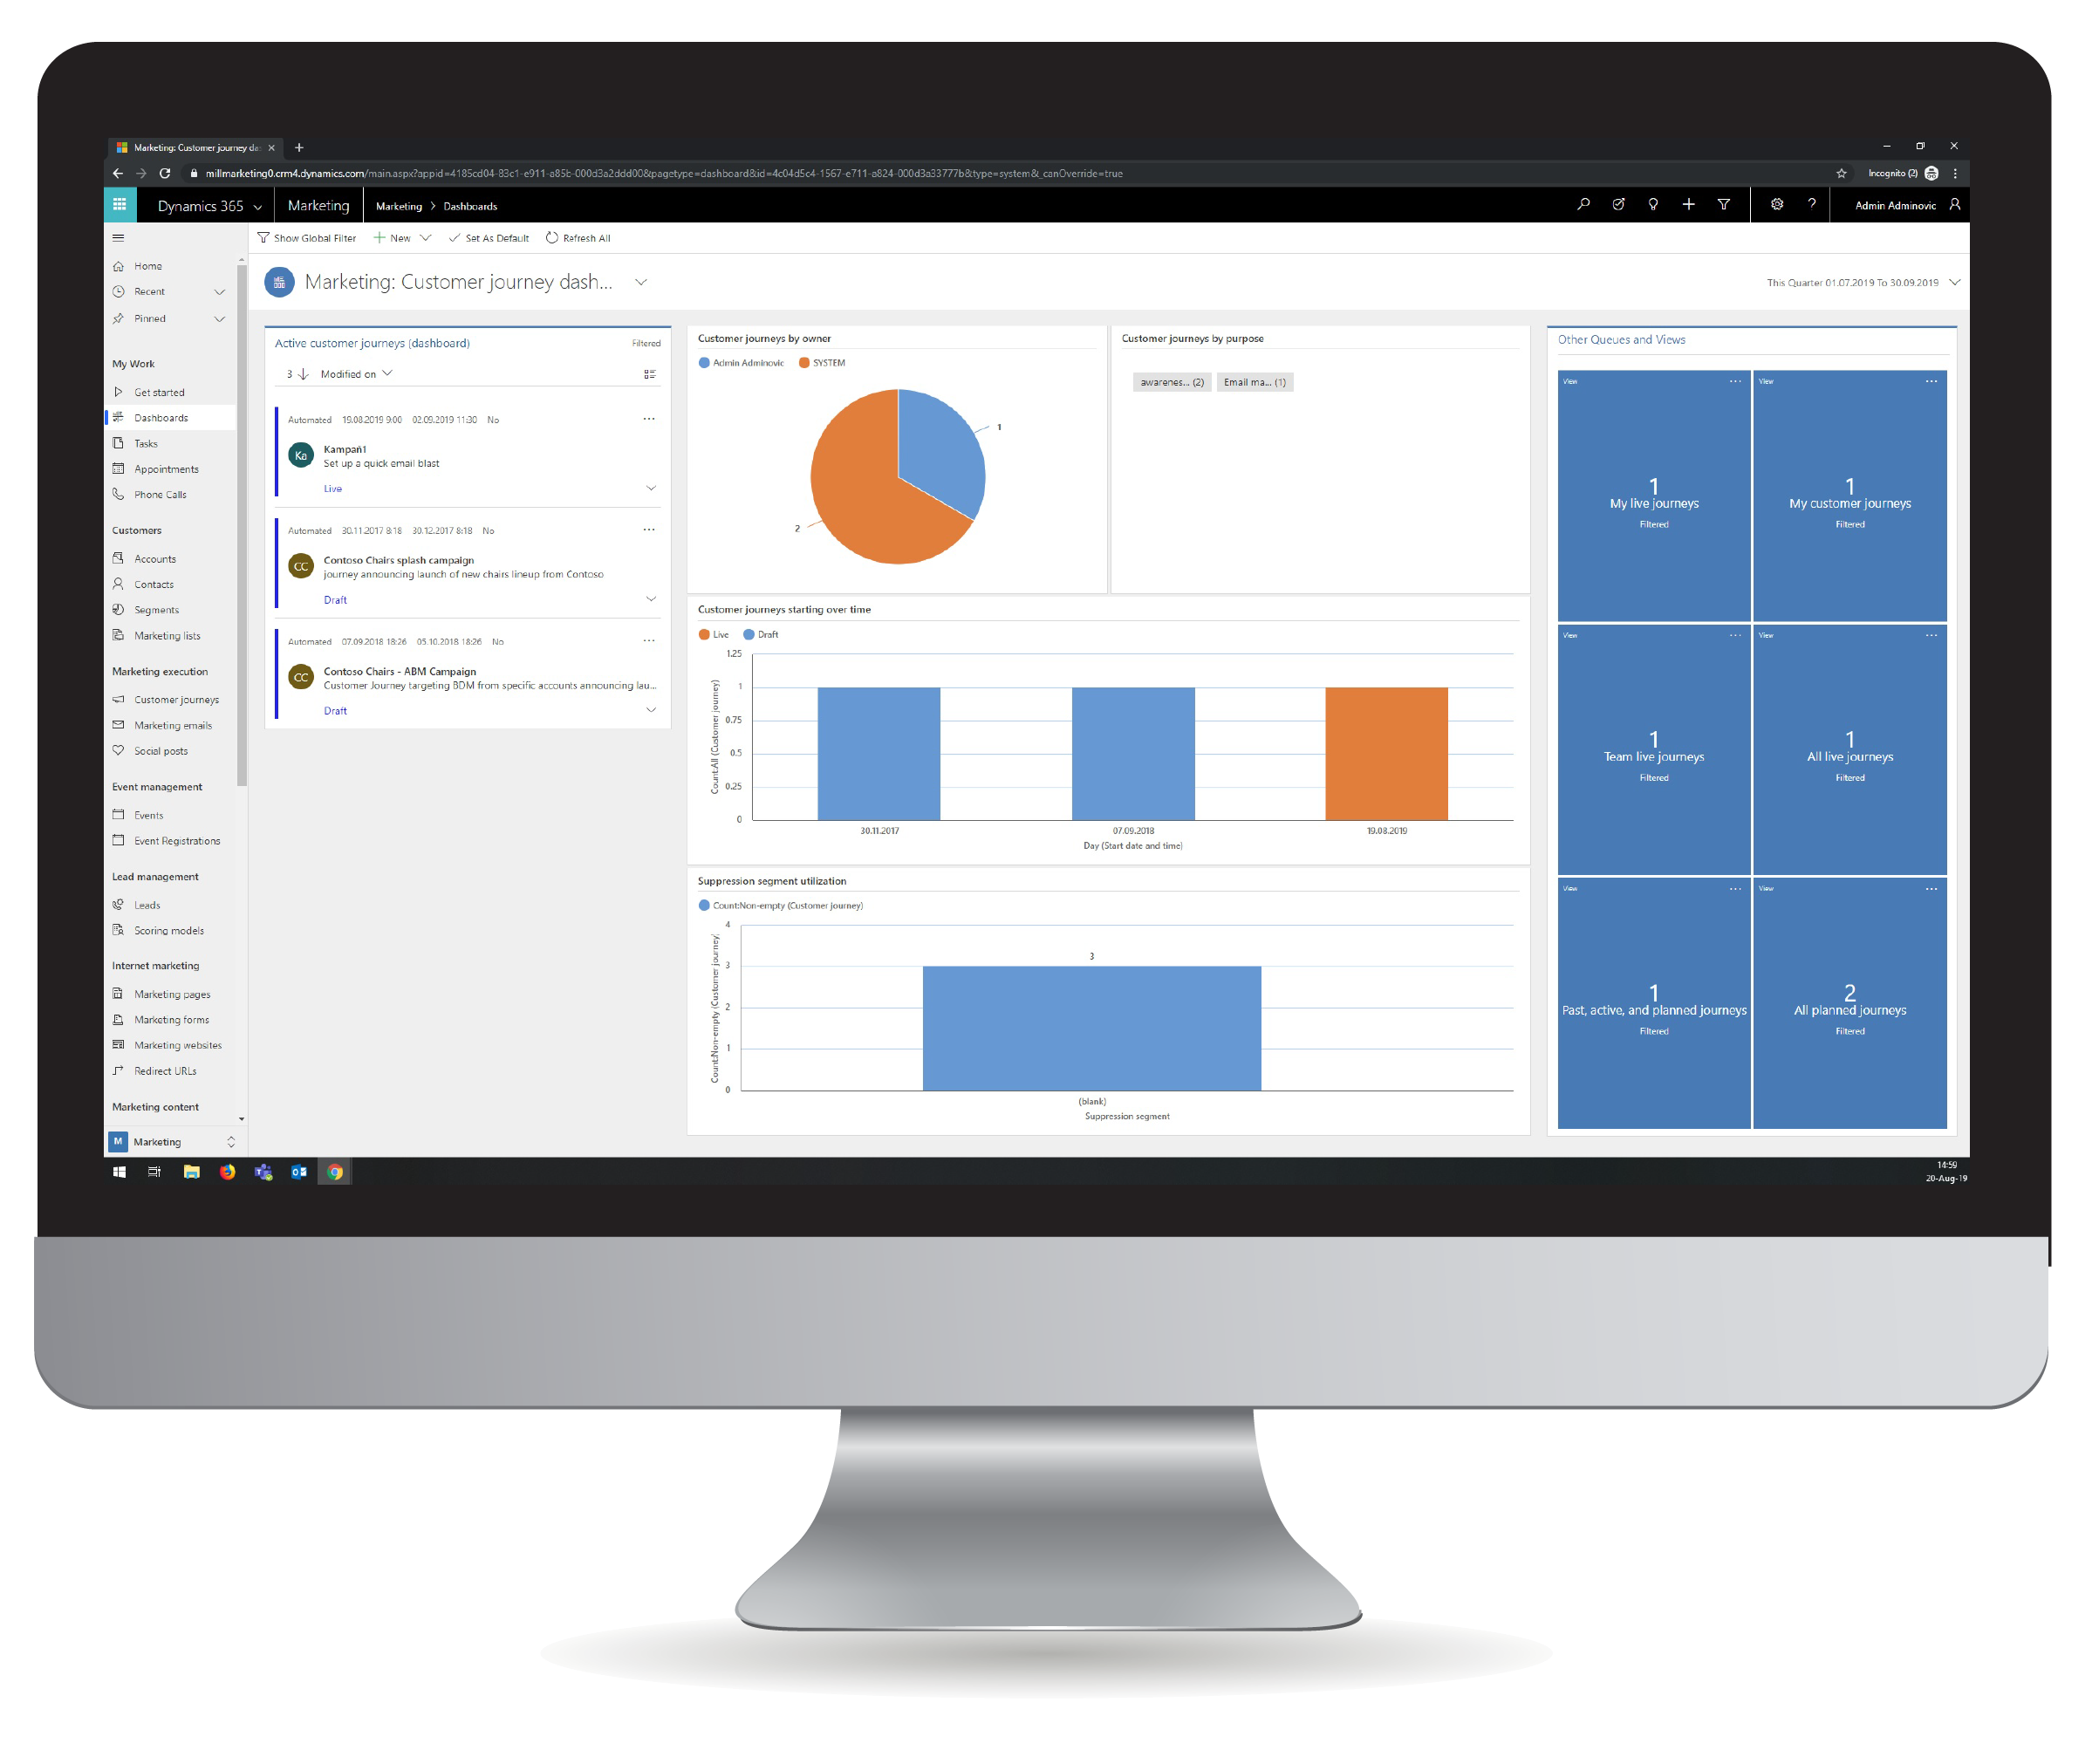 Dynamics 365 dashboards